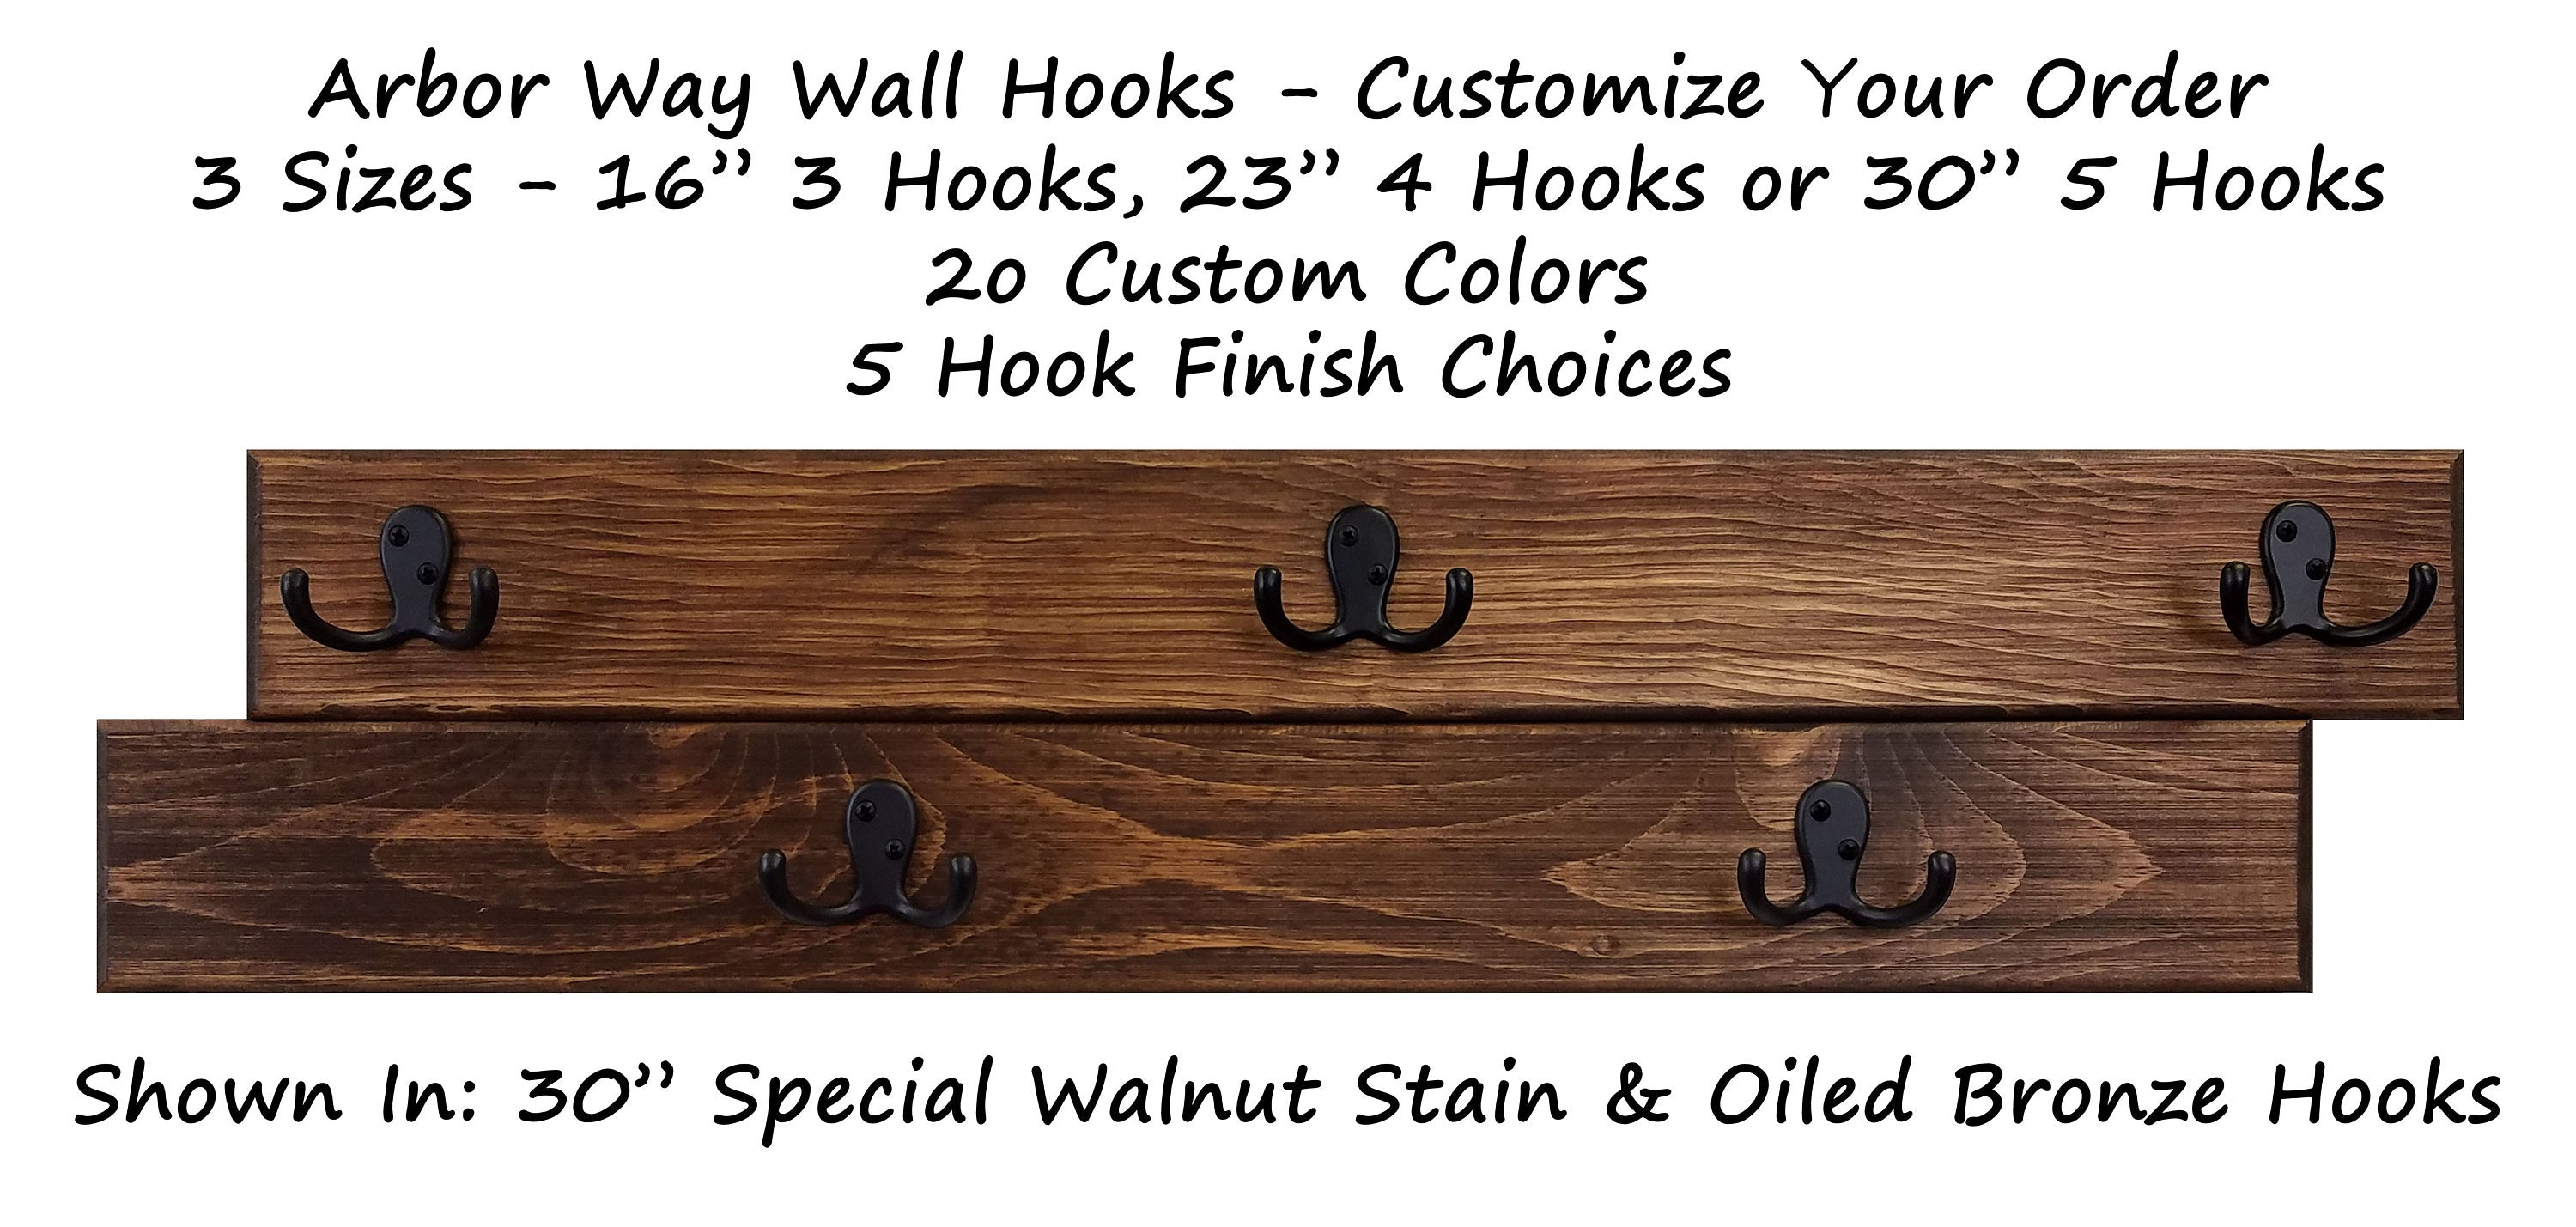 Arbor Way Wall Hooks - 20 Stain Colors - Renewed Decor & Storage